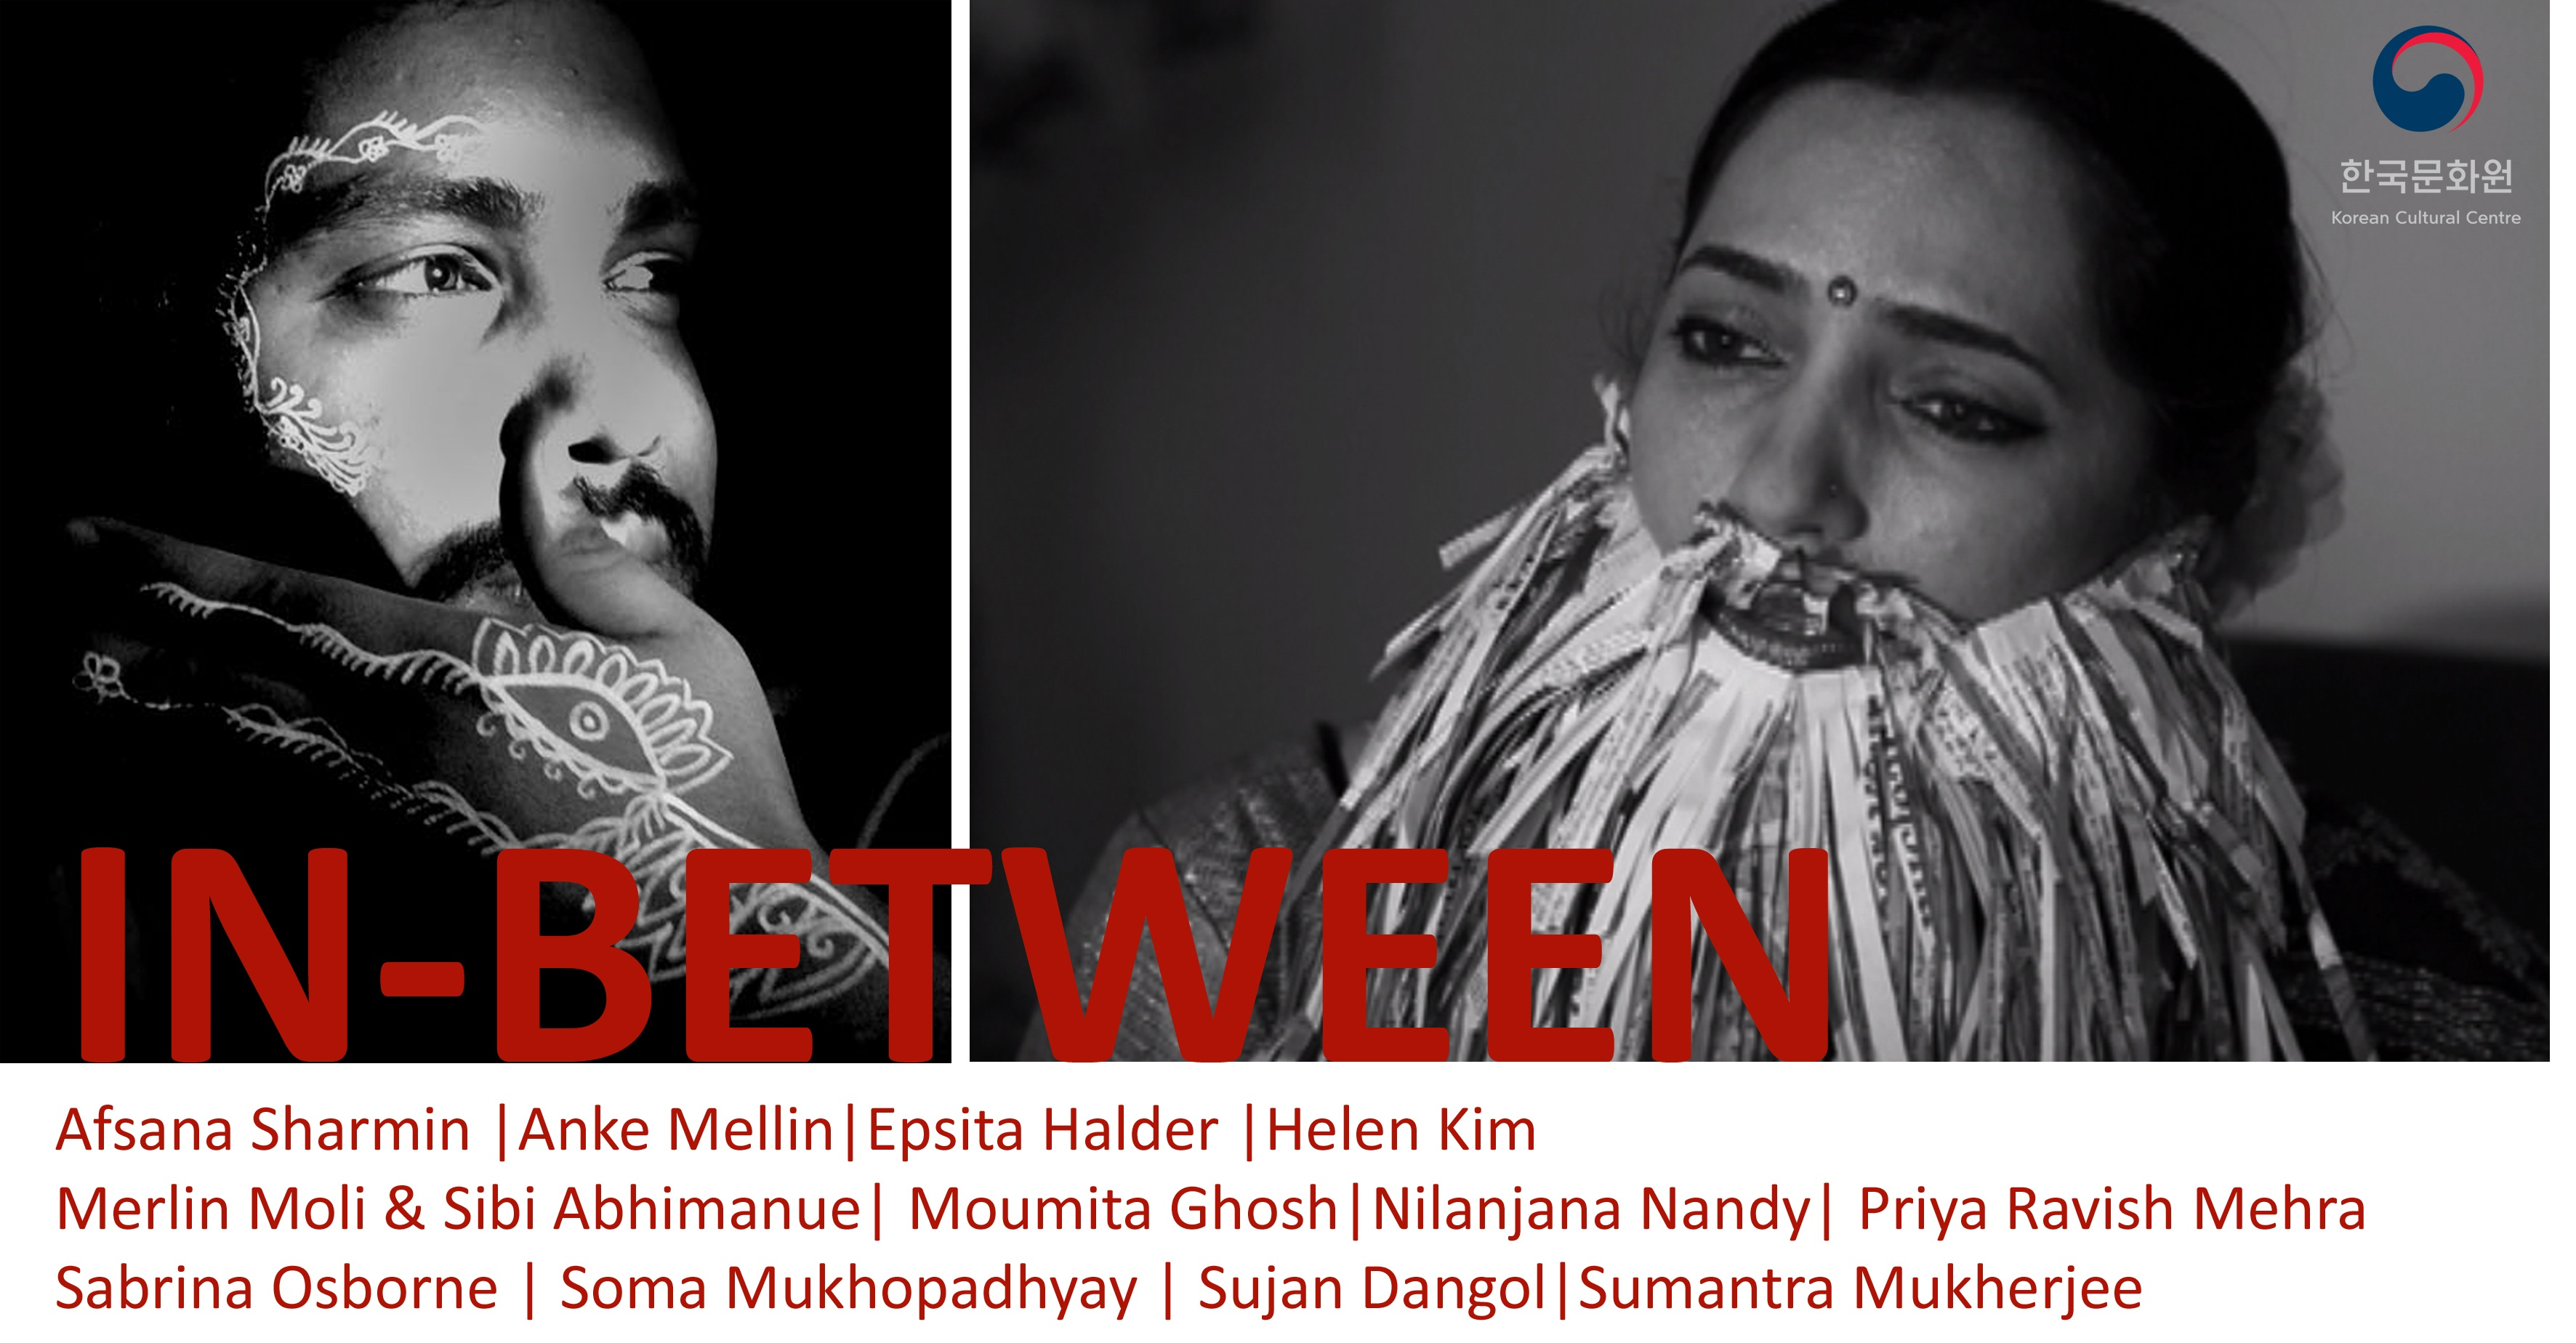 Korean Cultural Centre India presents Exhibition 'IN-BETWEEN'